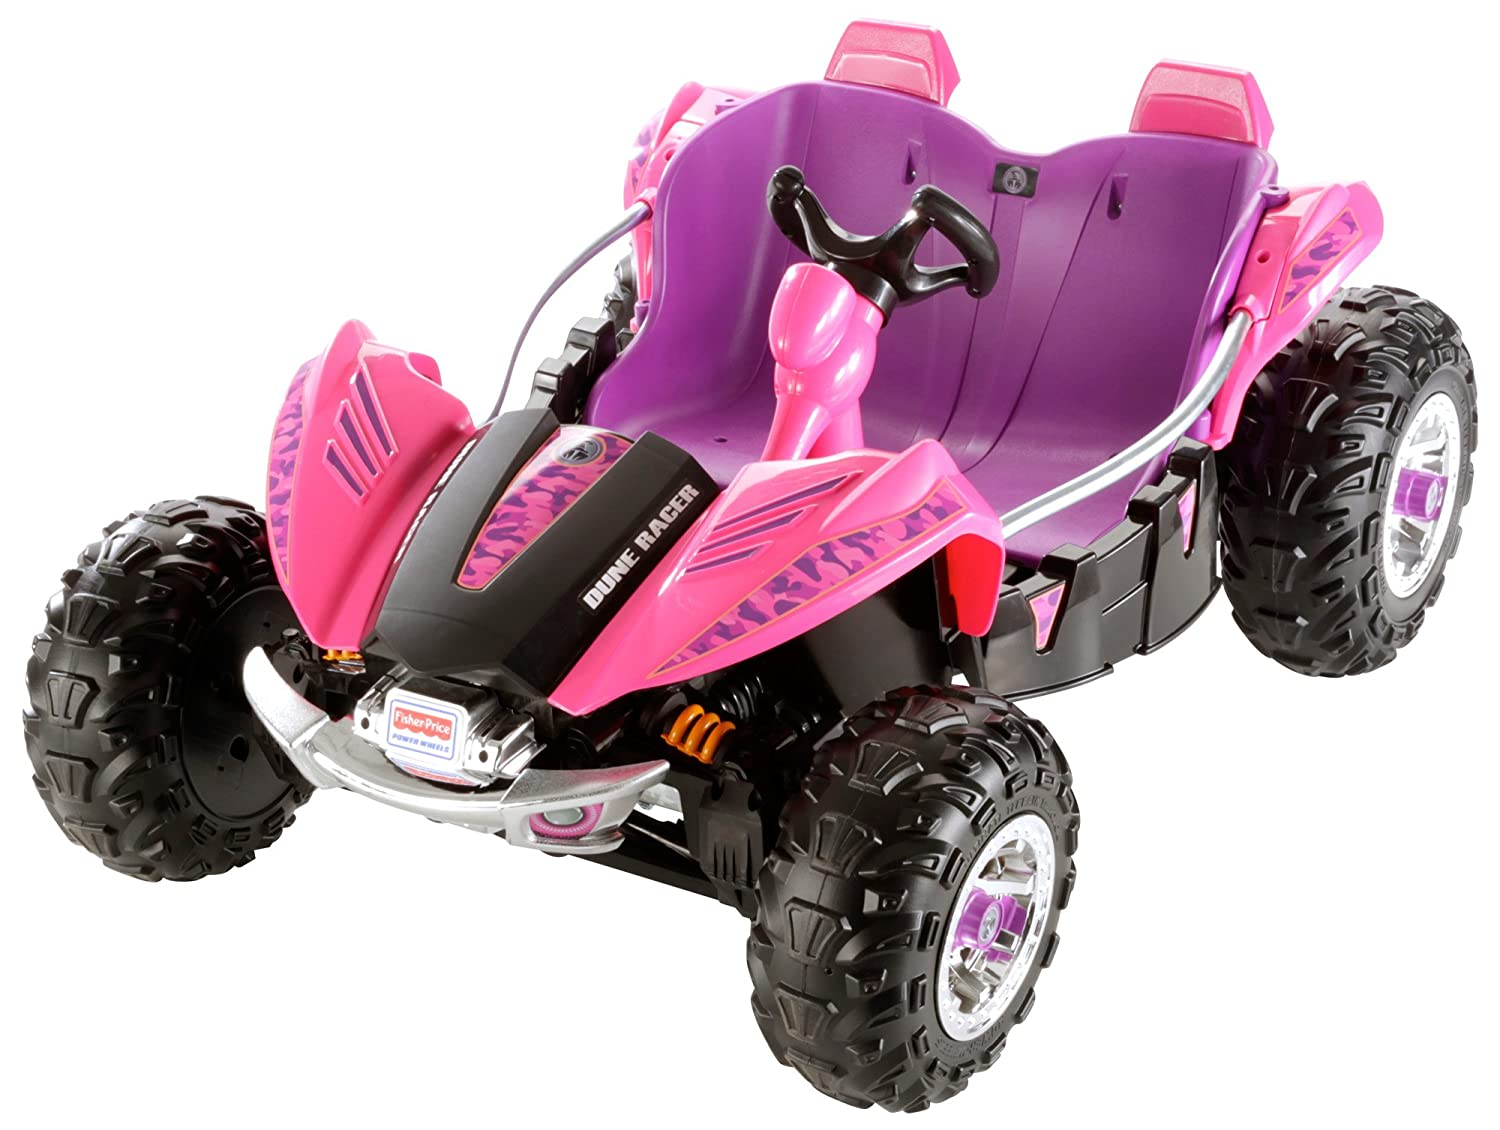 Best Toys For Girls : Best toys for year old girl hot birthday